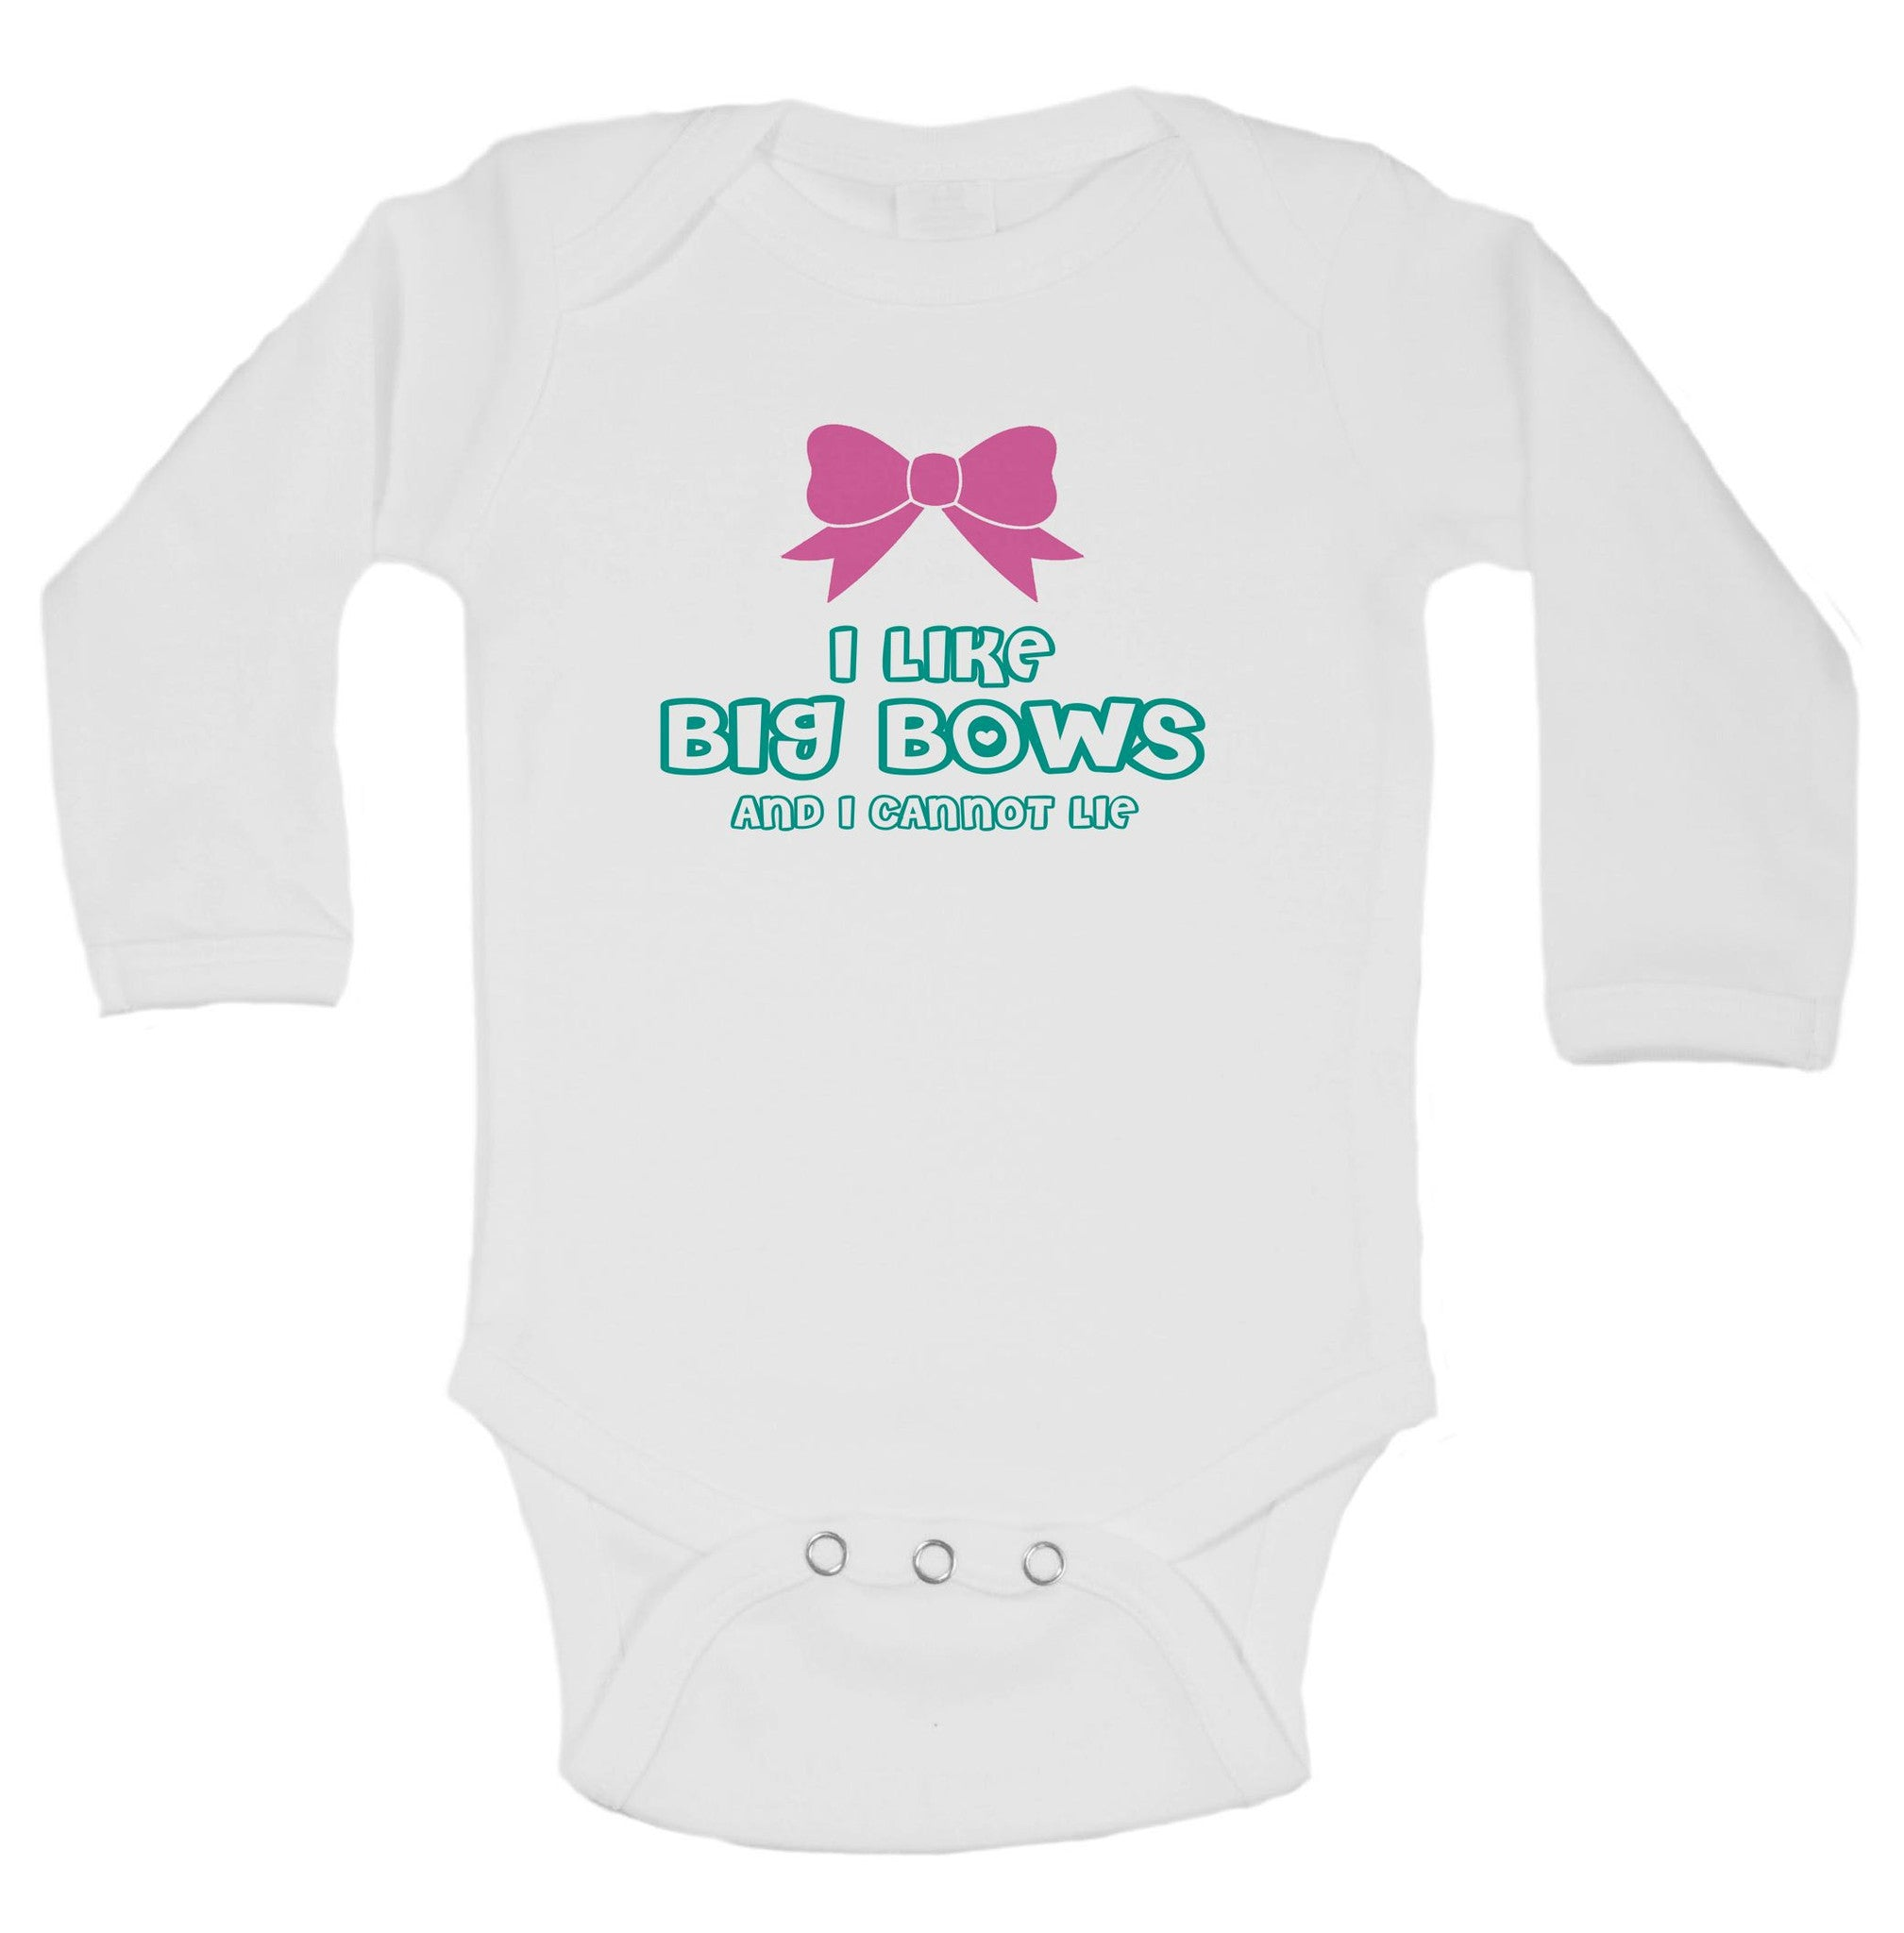 I Like Big Bows And I Cannot Lie Funny Kids Onesie - B12 - Funny Shirts Tank Tops Burnouts and Triblends  - 1